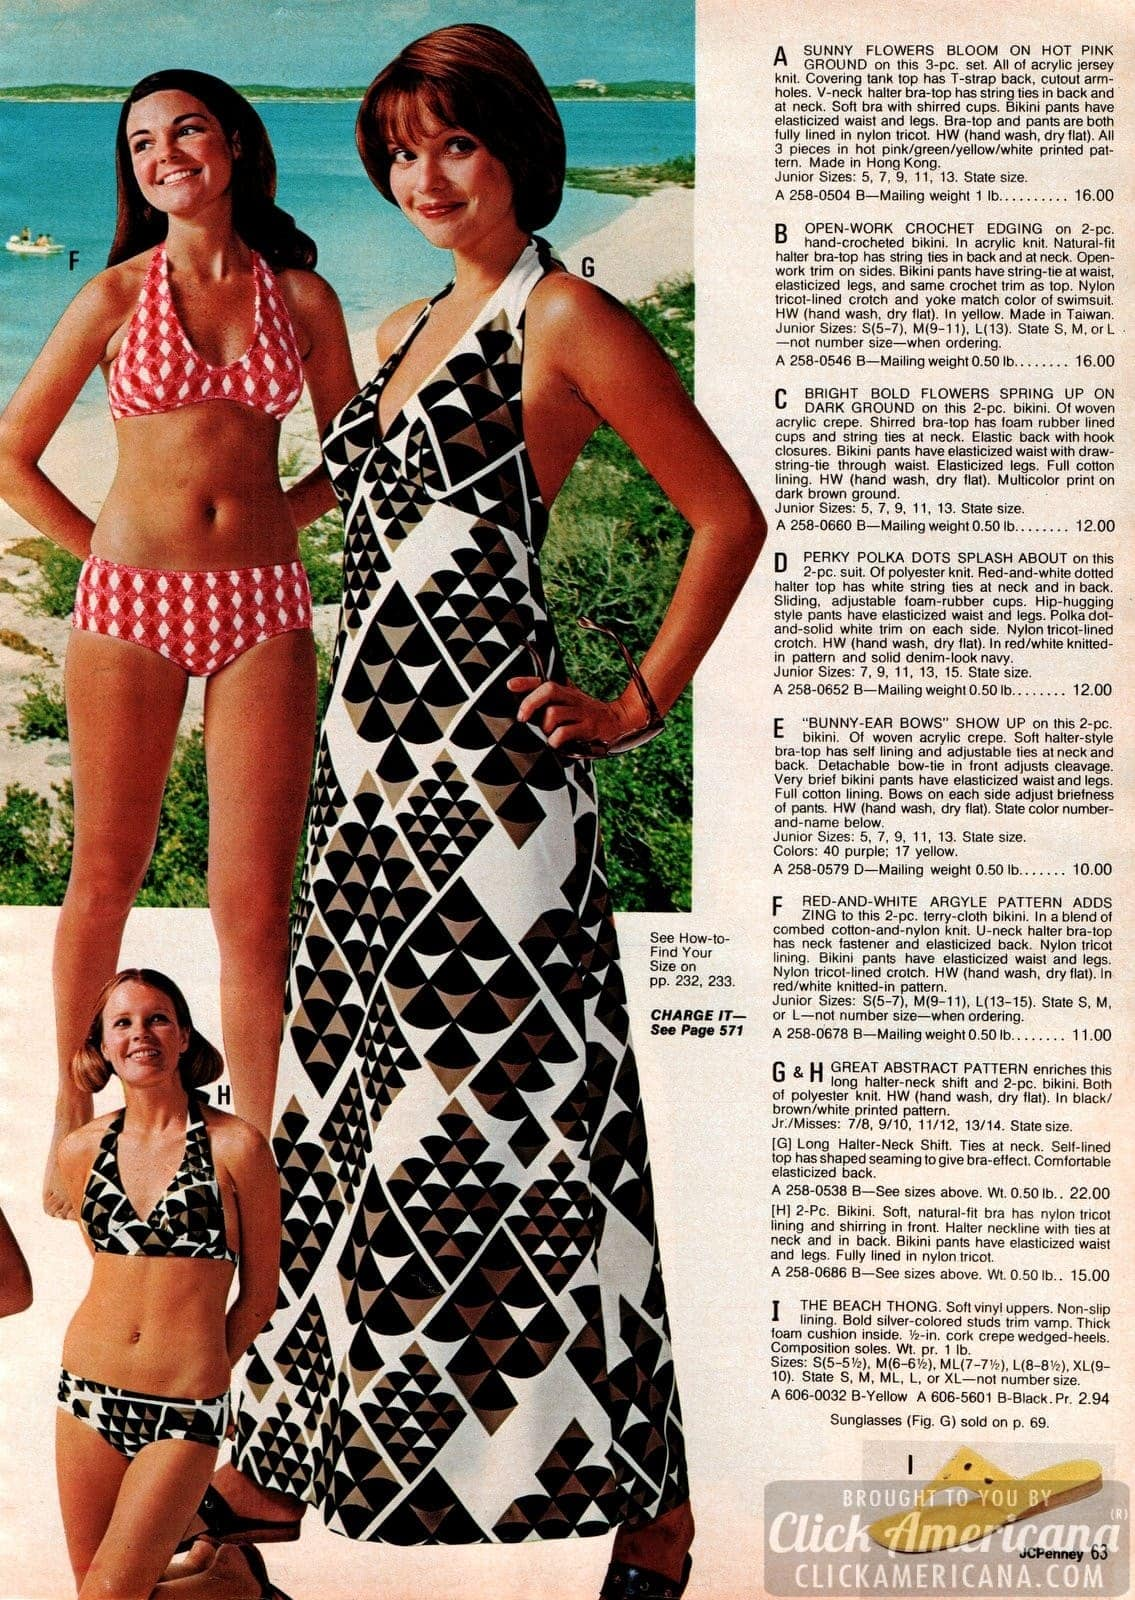 Vintage swimwear for women from 1973 (2)